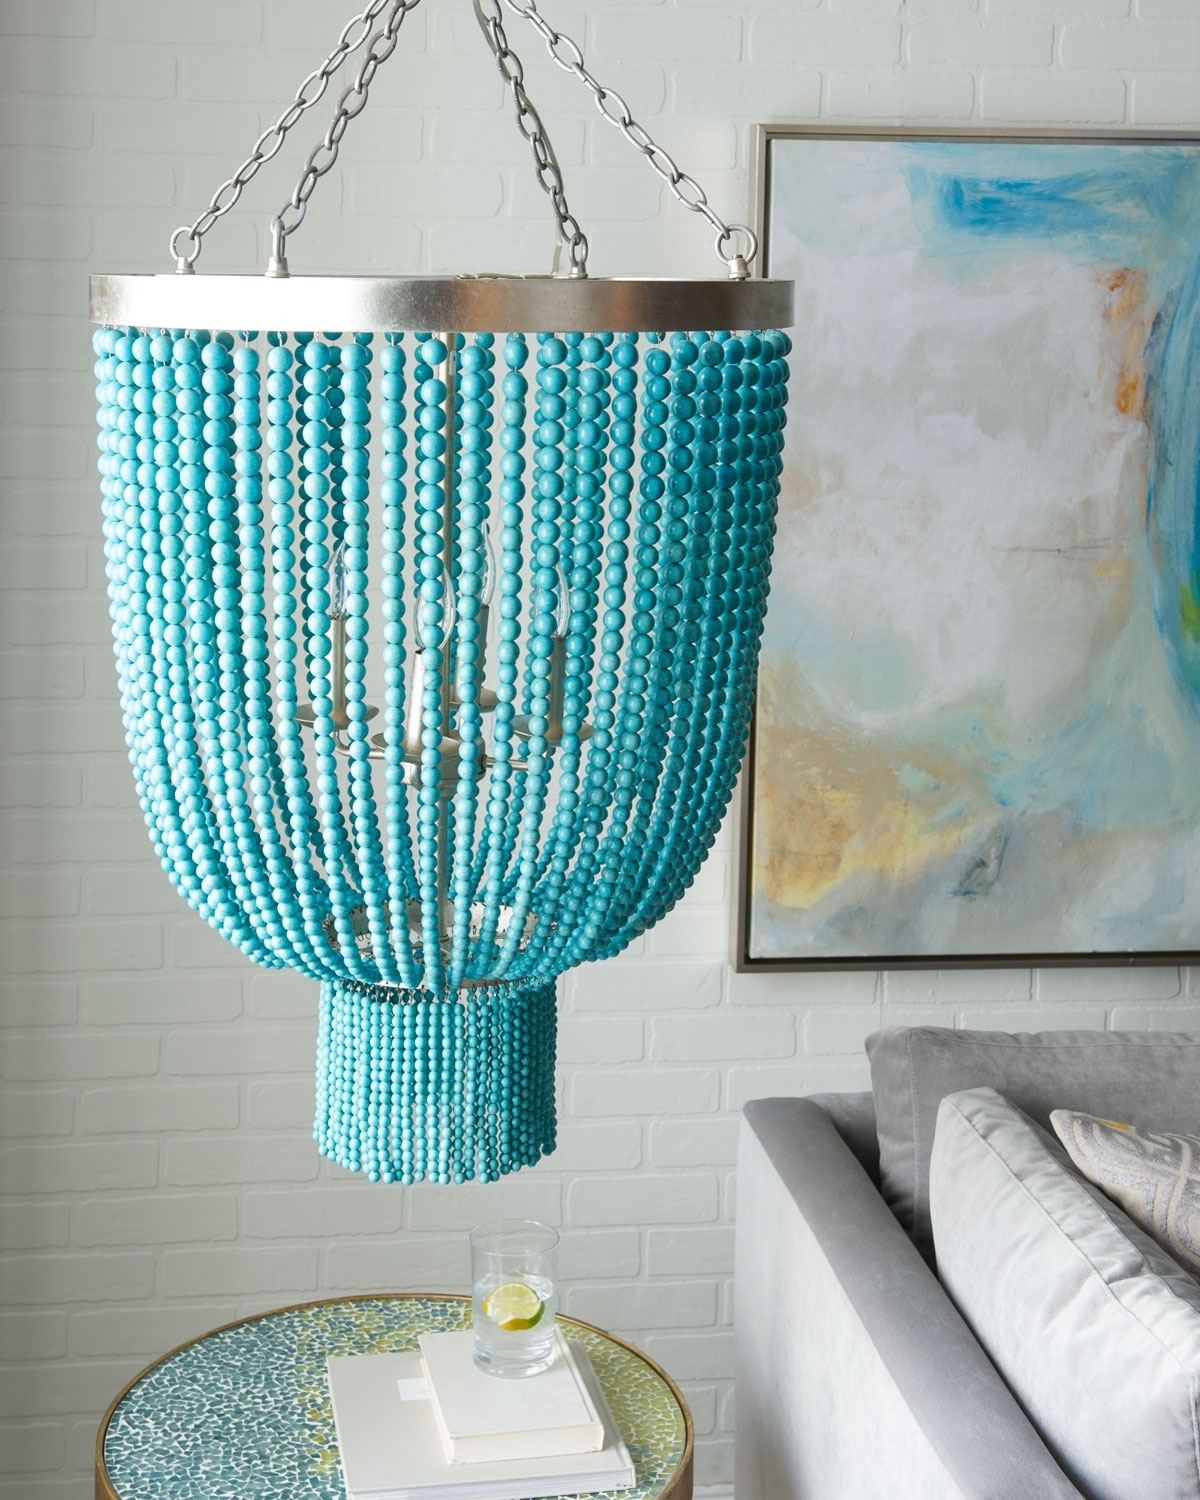 Everything Turquoise With Regard To Popular Turquoise Chandelier Lights (Gallery 9 of 15)